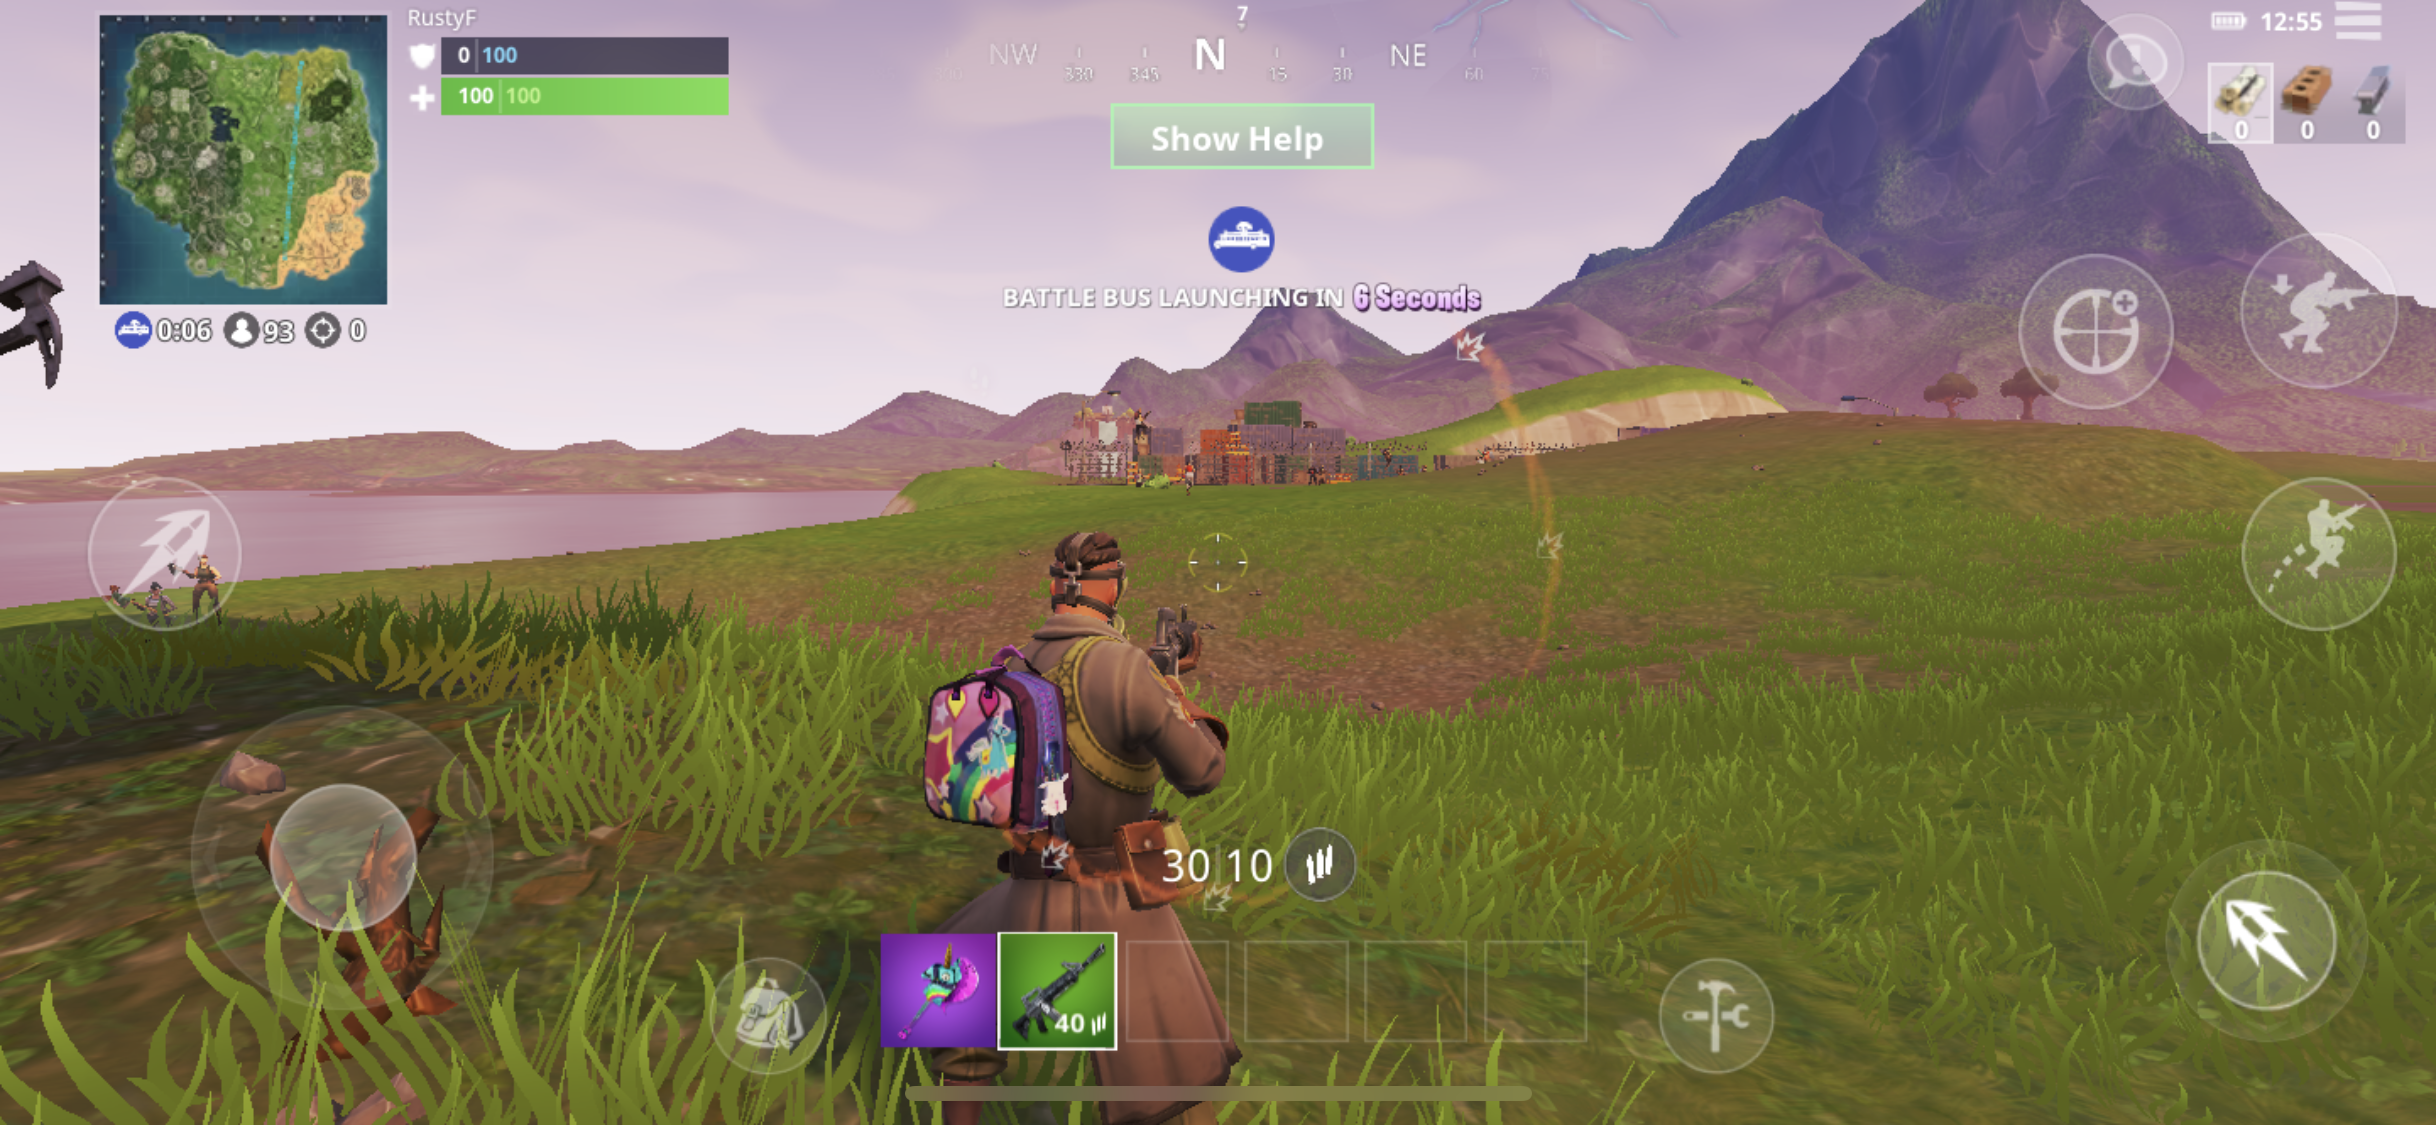 Fortnite on iOS just got a huge upgrade: auto fire - Polygon